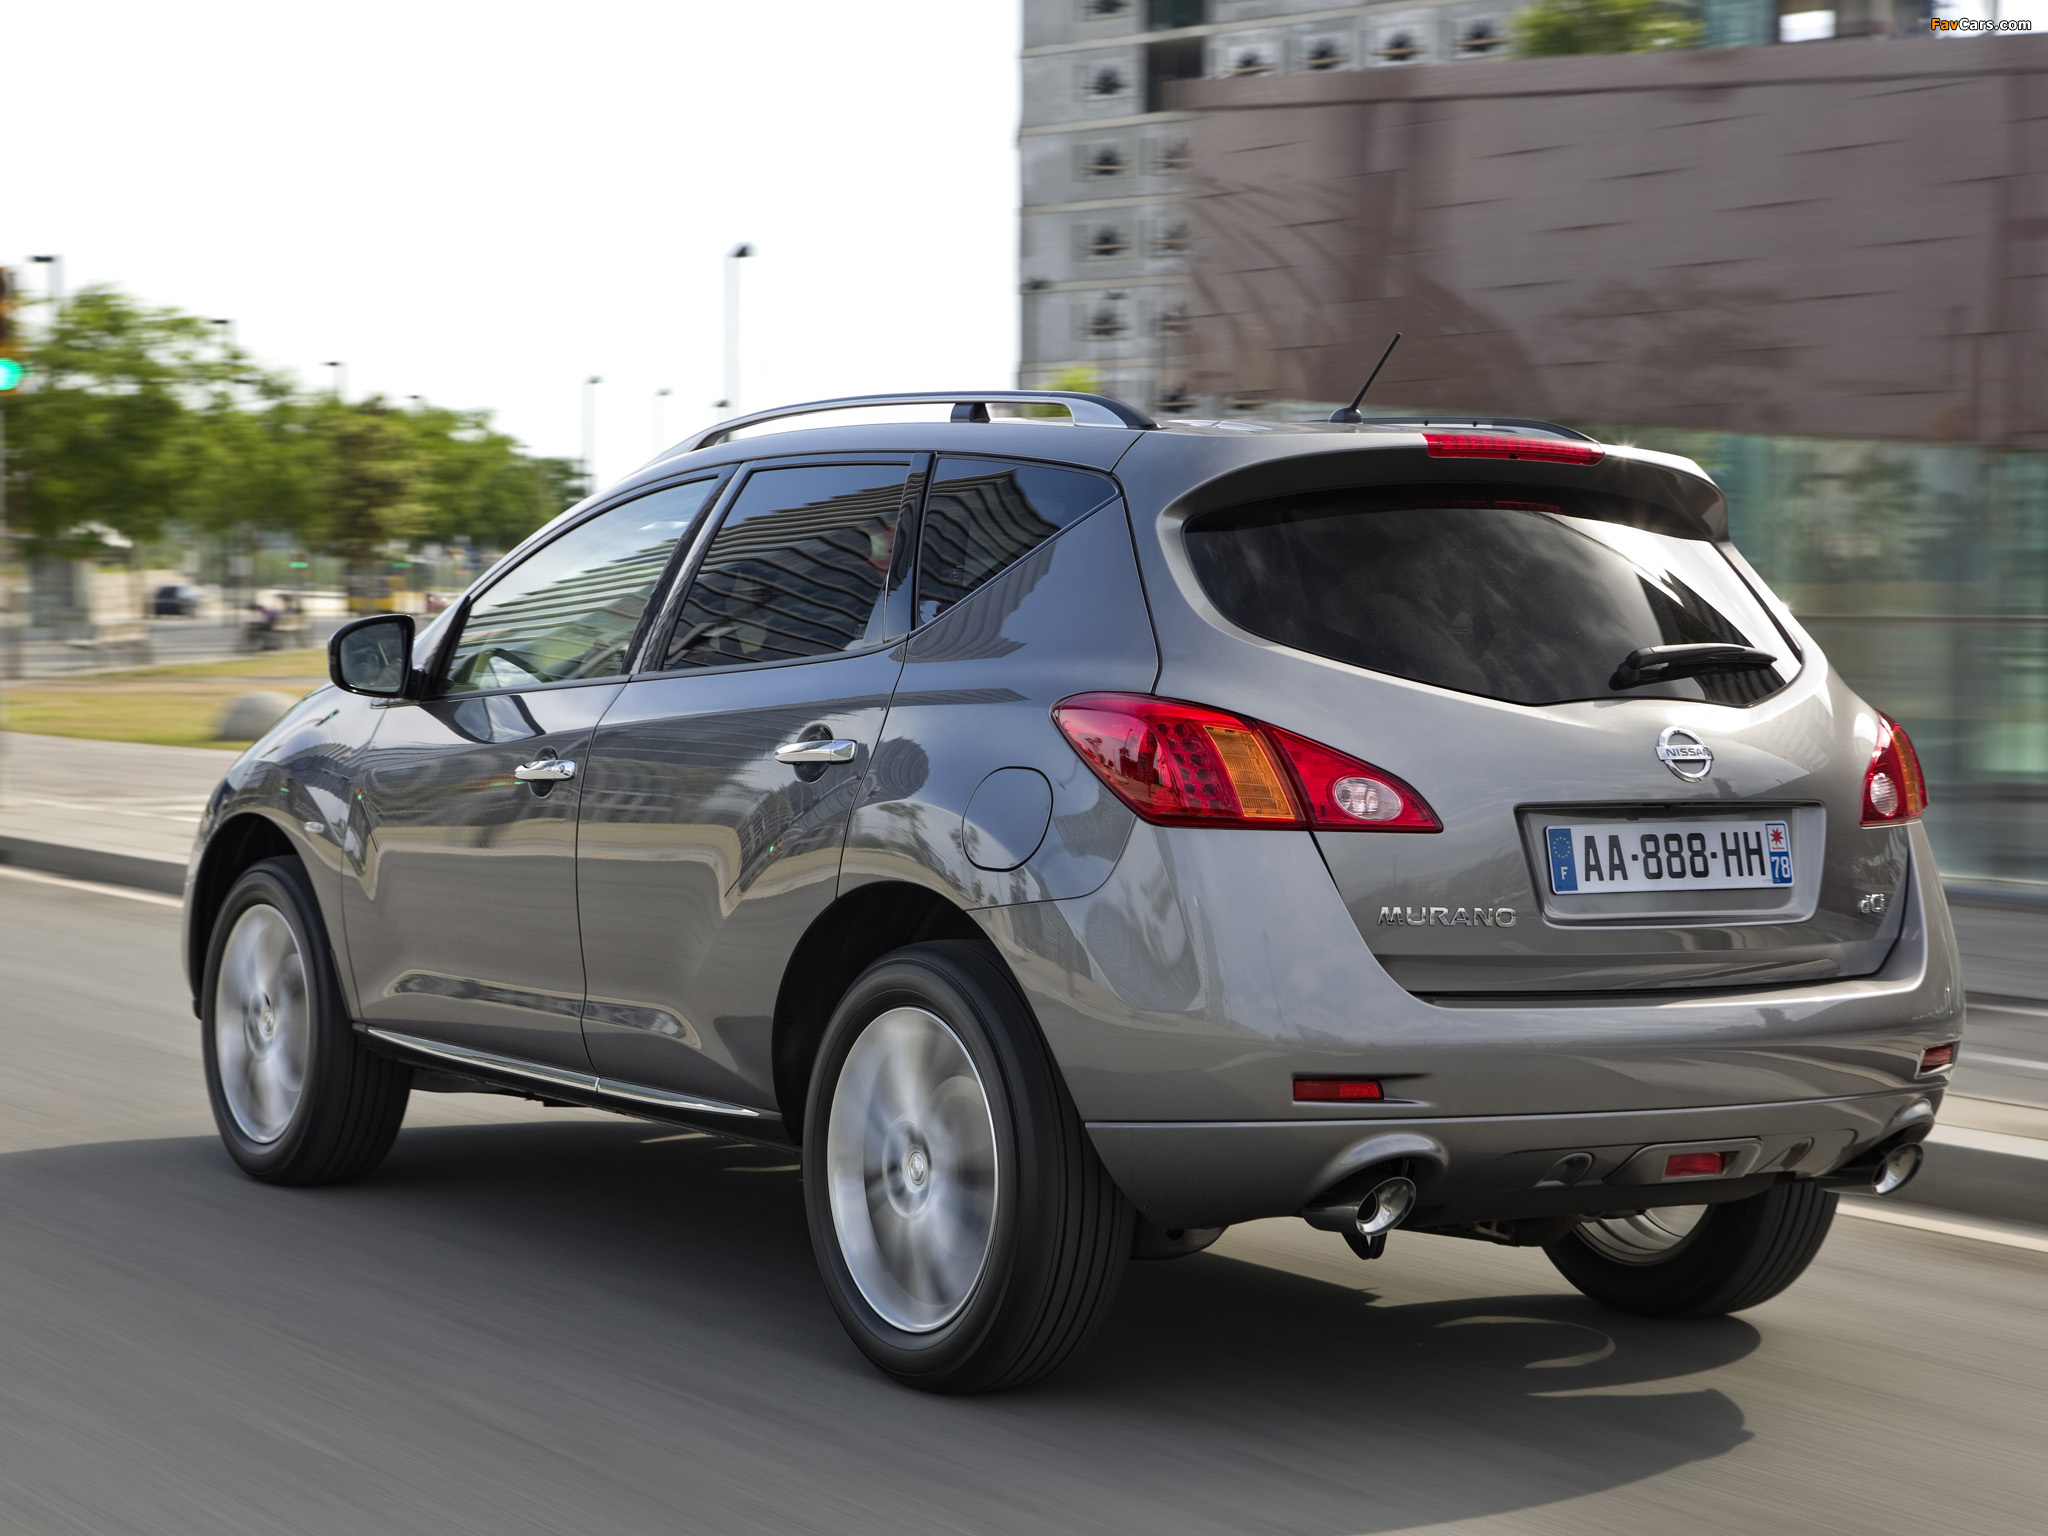 Nissan Murano (Z51) 2010 pictures (2048 x 1536)